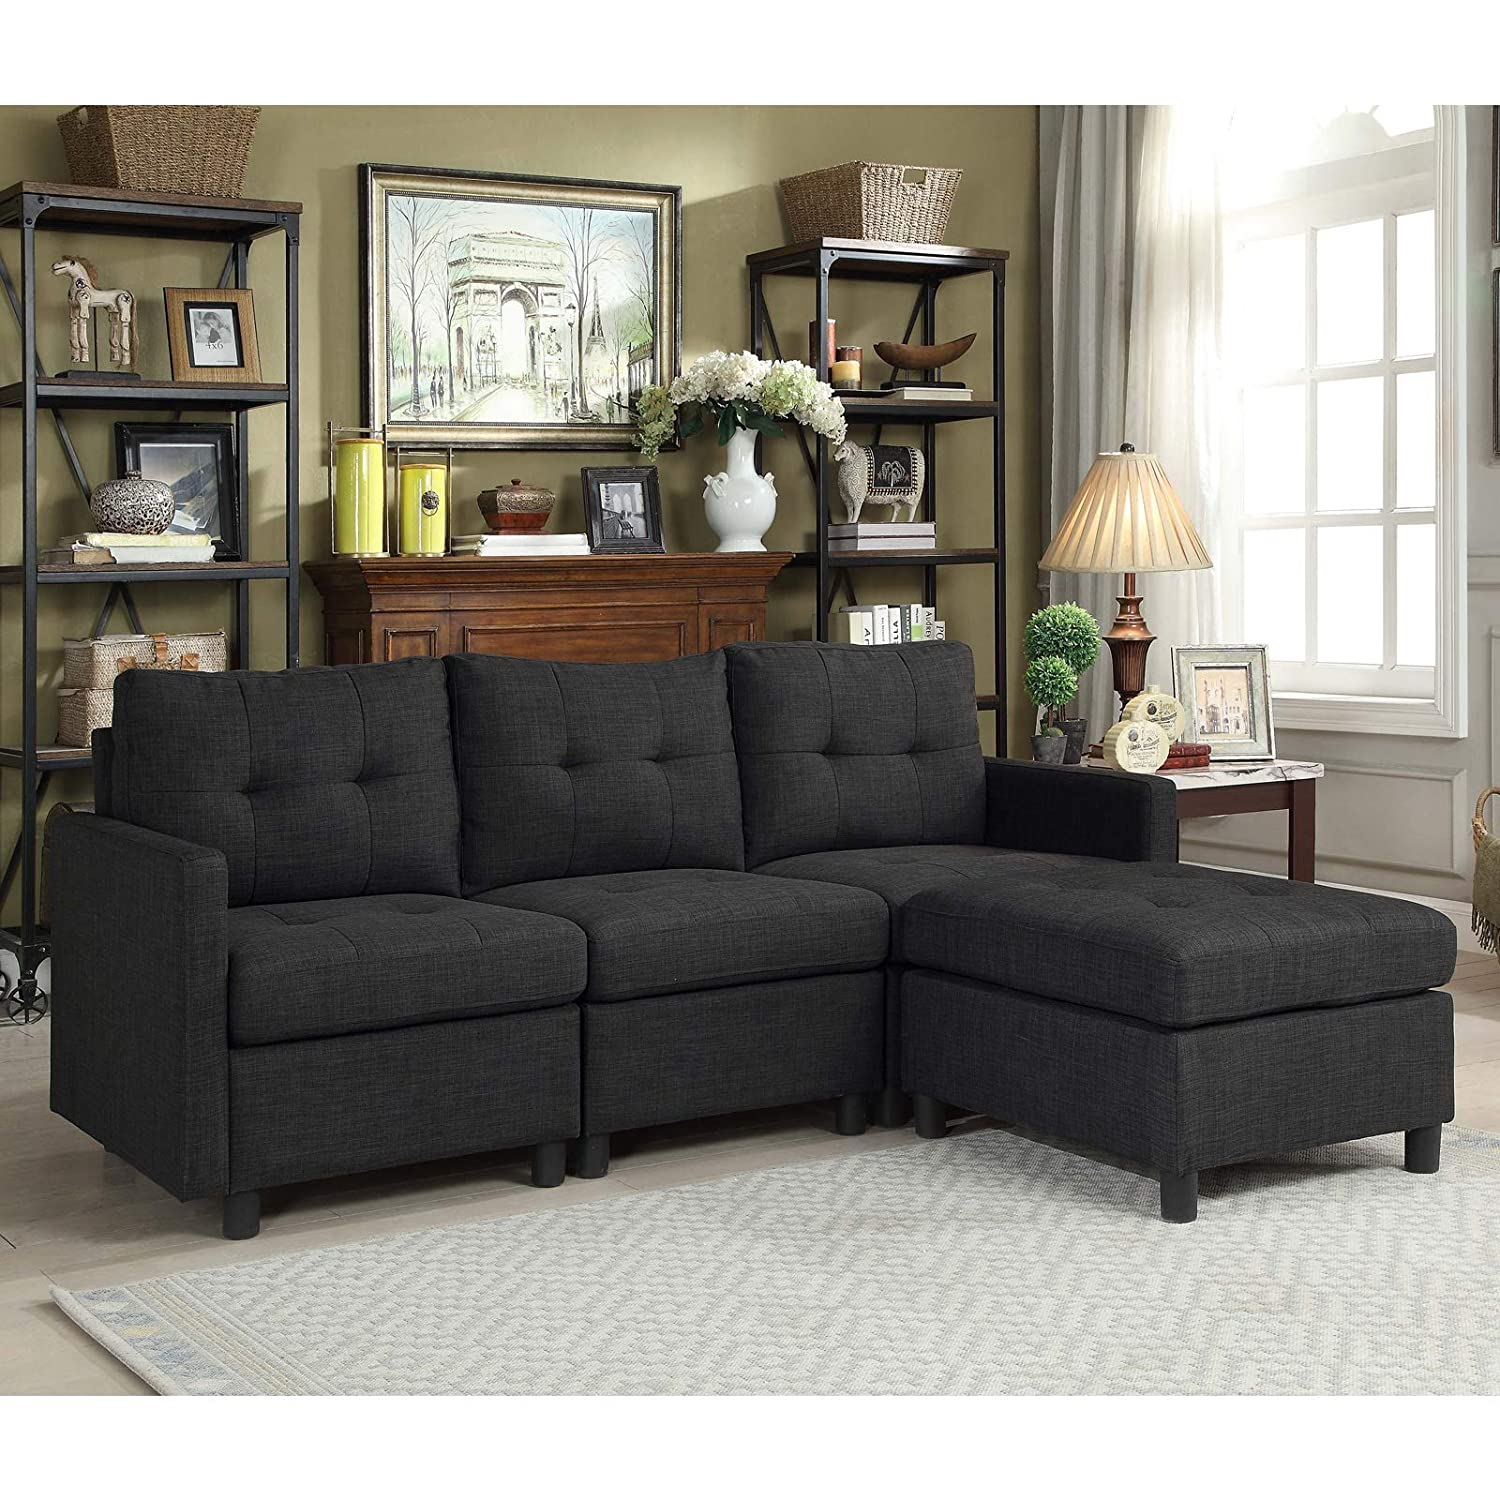 Amazon com bliss brands modular sectional sofa sets assemble living room furniture sofas loveseat bundle set cushions easy to assemble d6012 7 kitchen